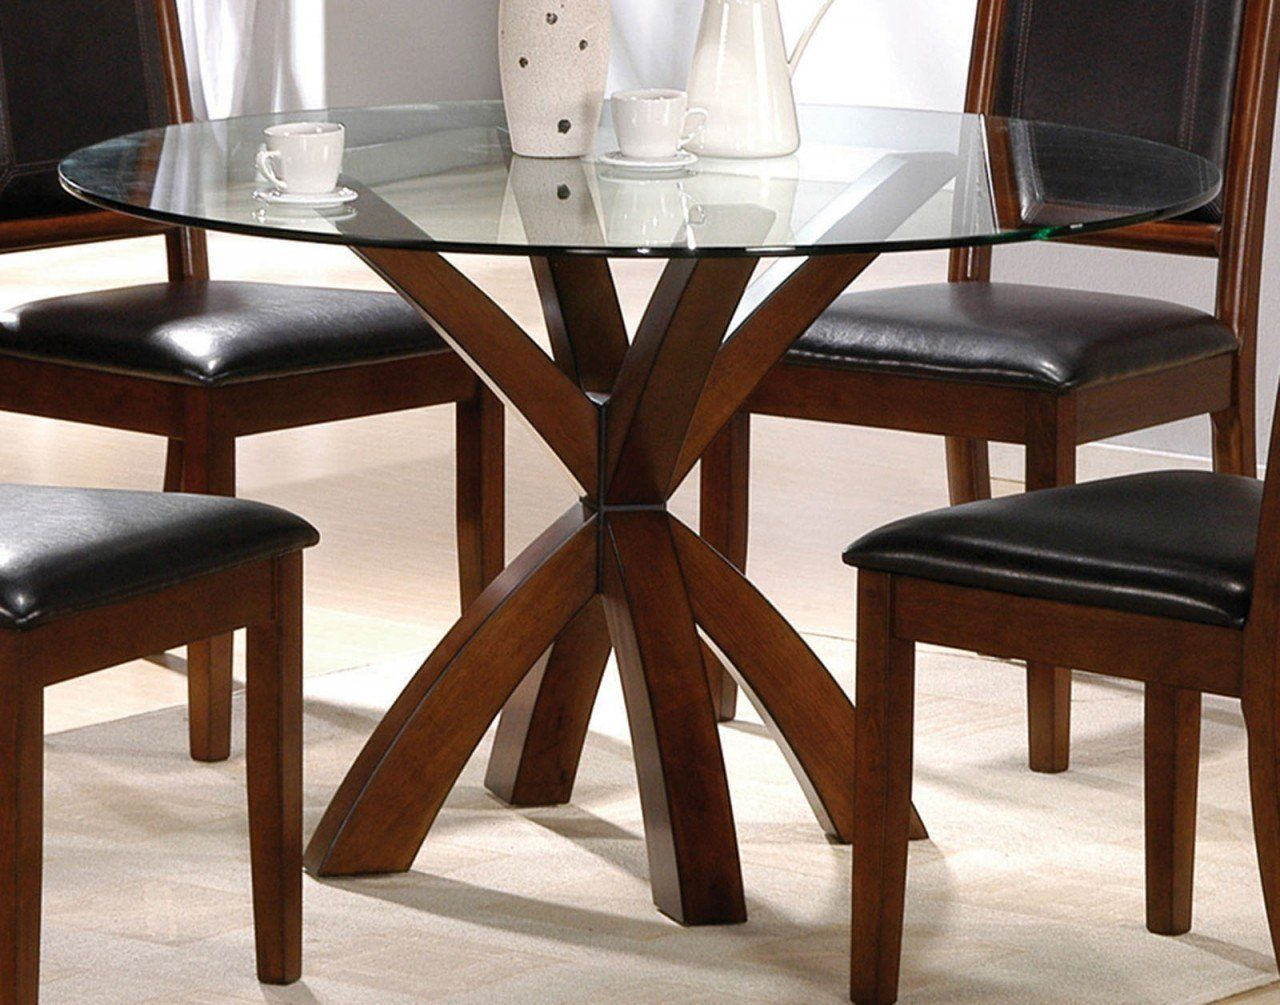 Dining room simple round glass top tables with wood base for Simple dining room table decor